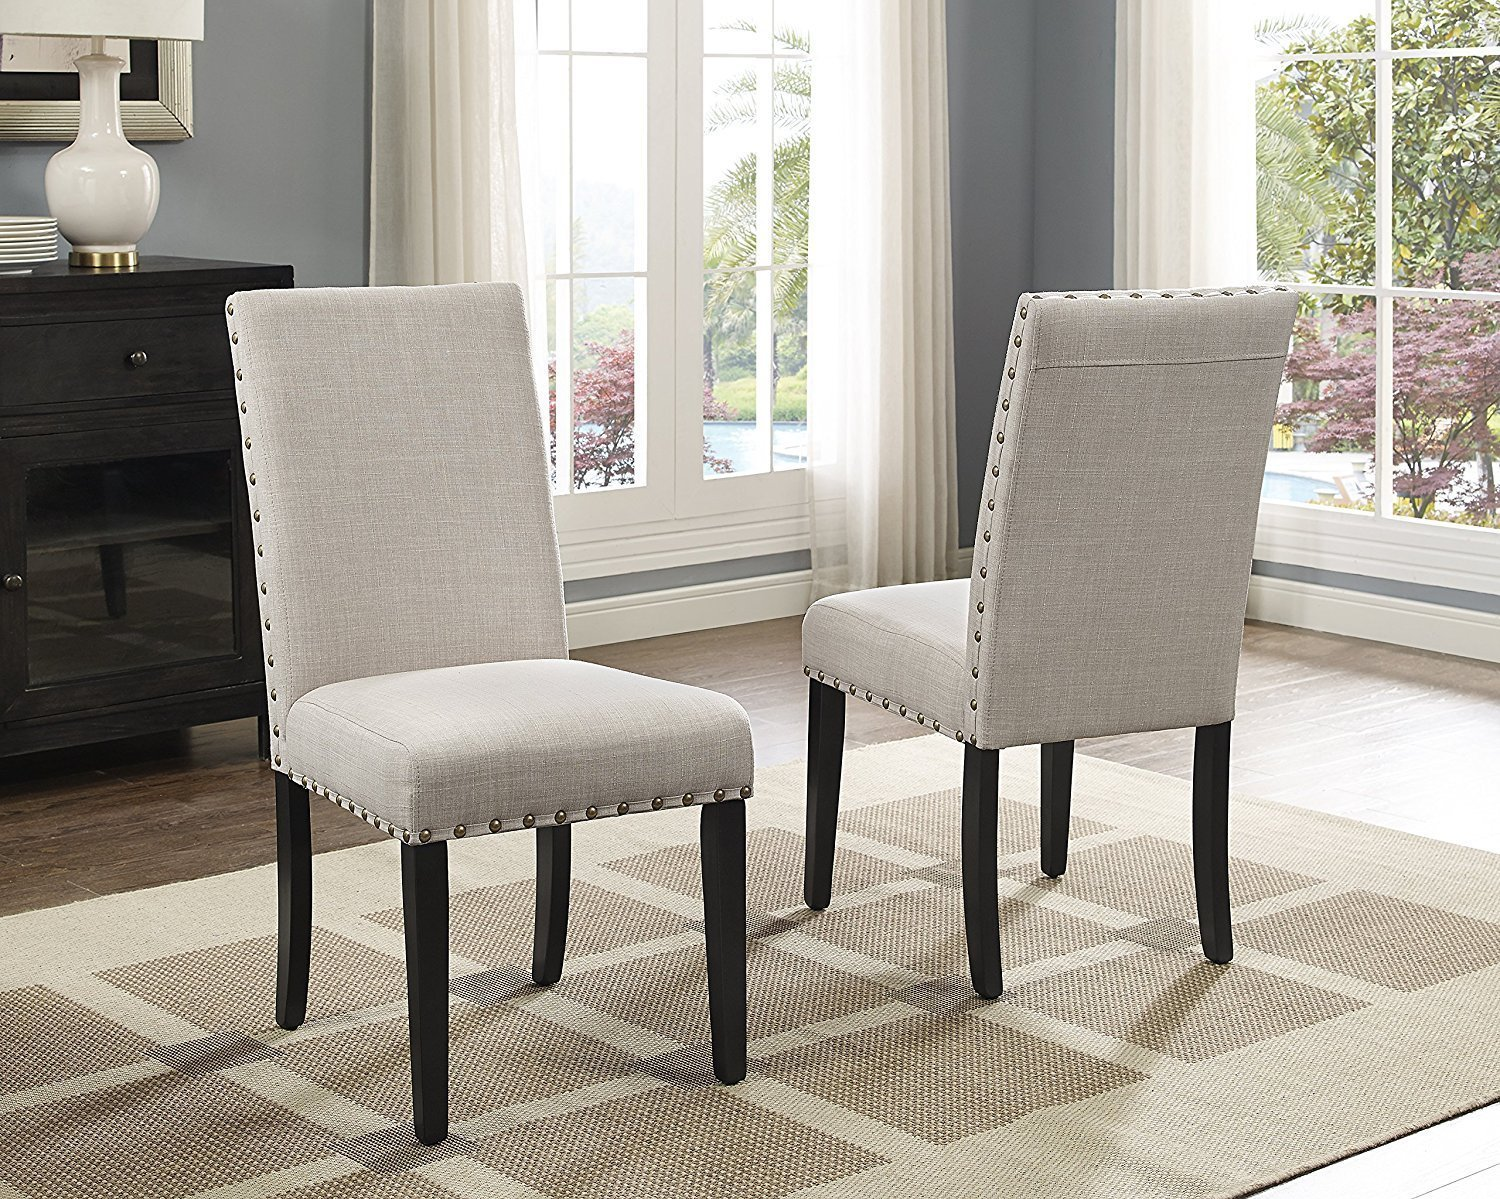 Roundhill Furniture T163-C162TA-C162TA-CB162TA Biony 6-Piece Wood Dining Set with Nailhead Chairs and Bench, Tan by Roundhill Furniture (Image #2)